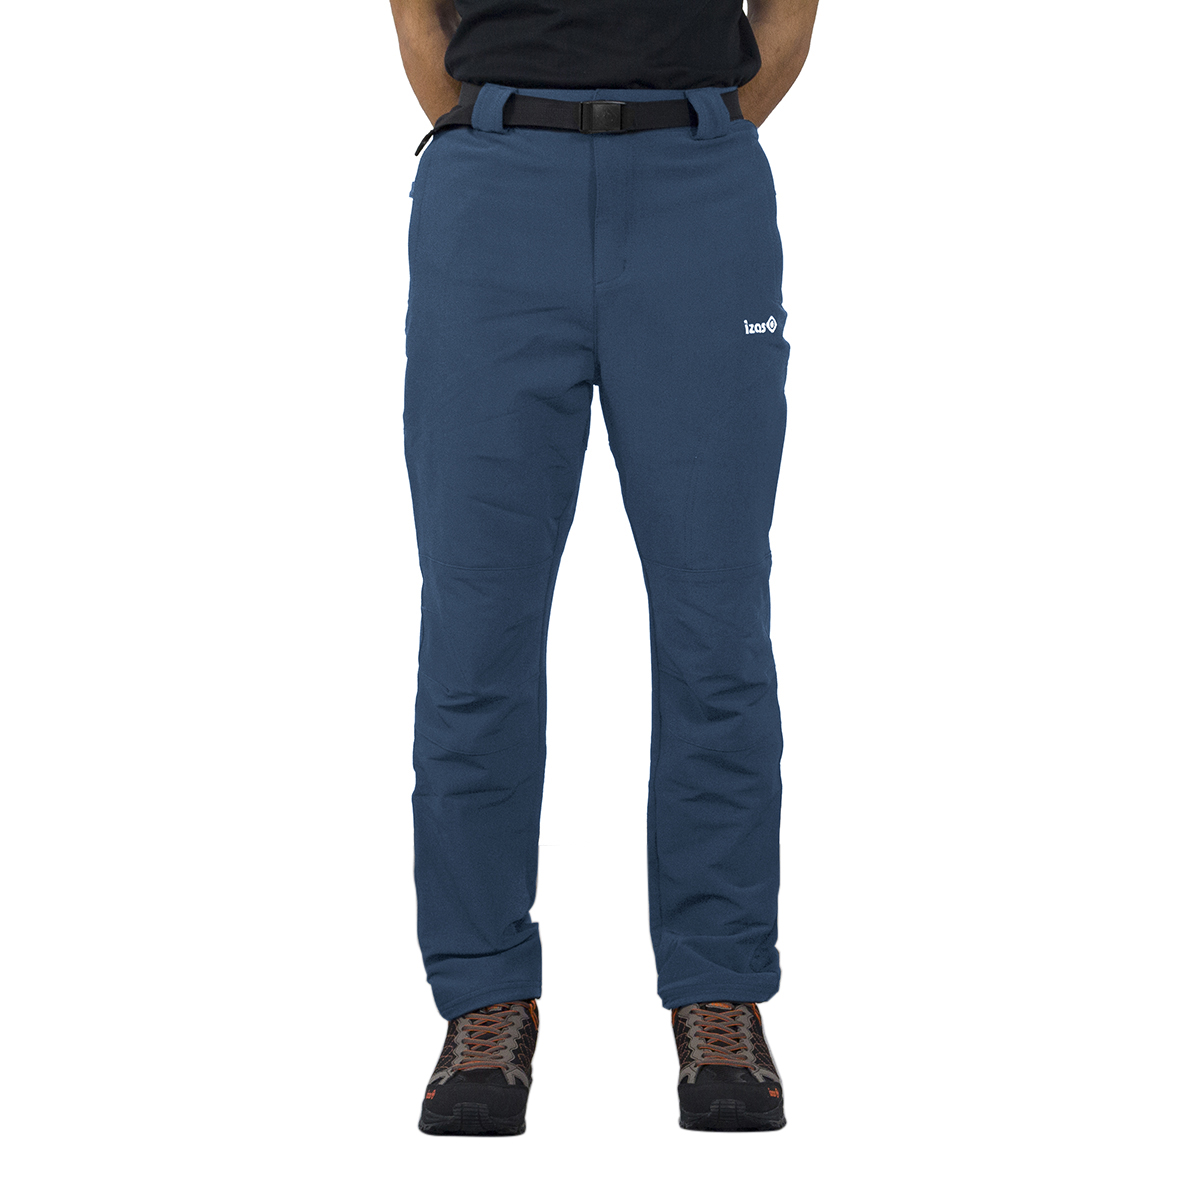 MAN'S CHAMONIX STRETCH PANT BLUE